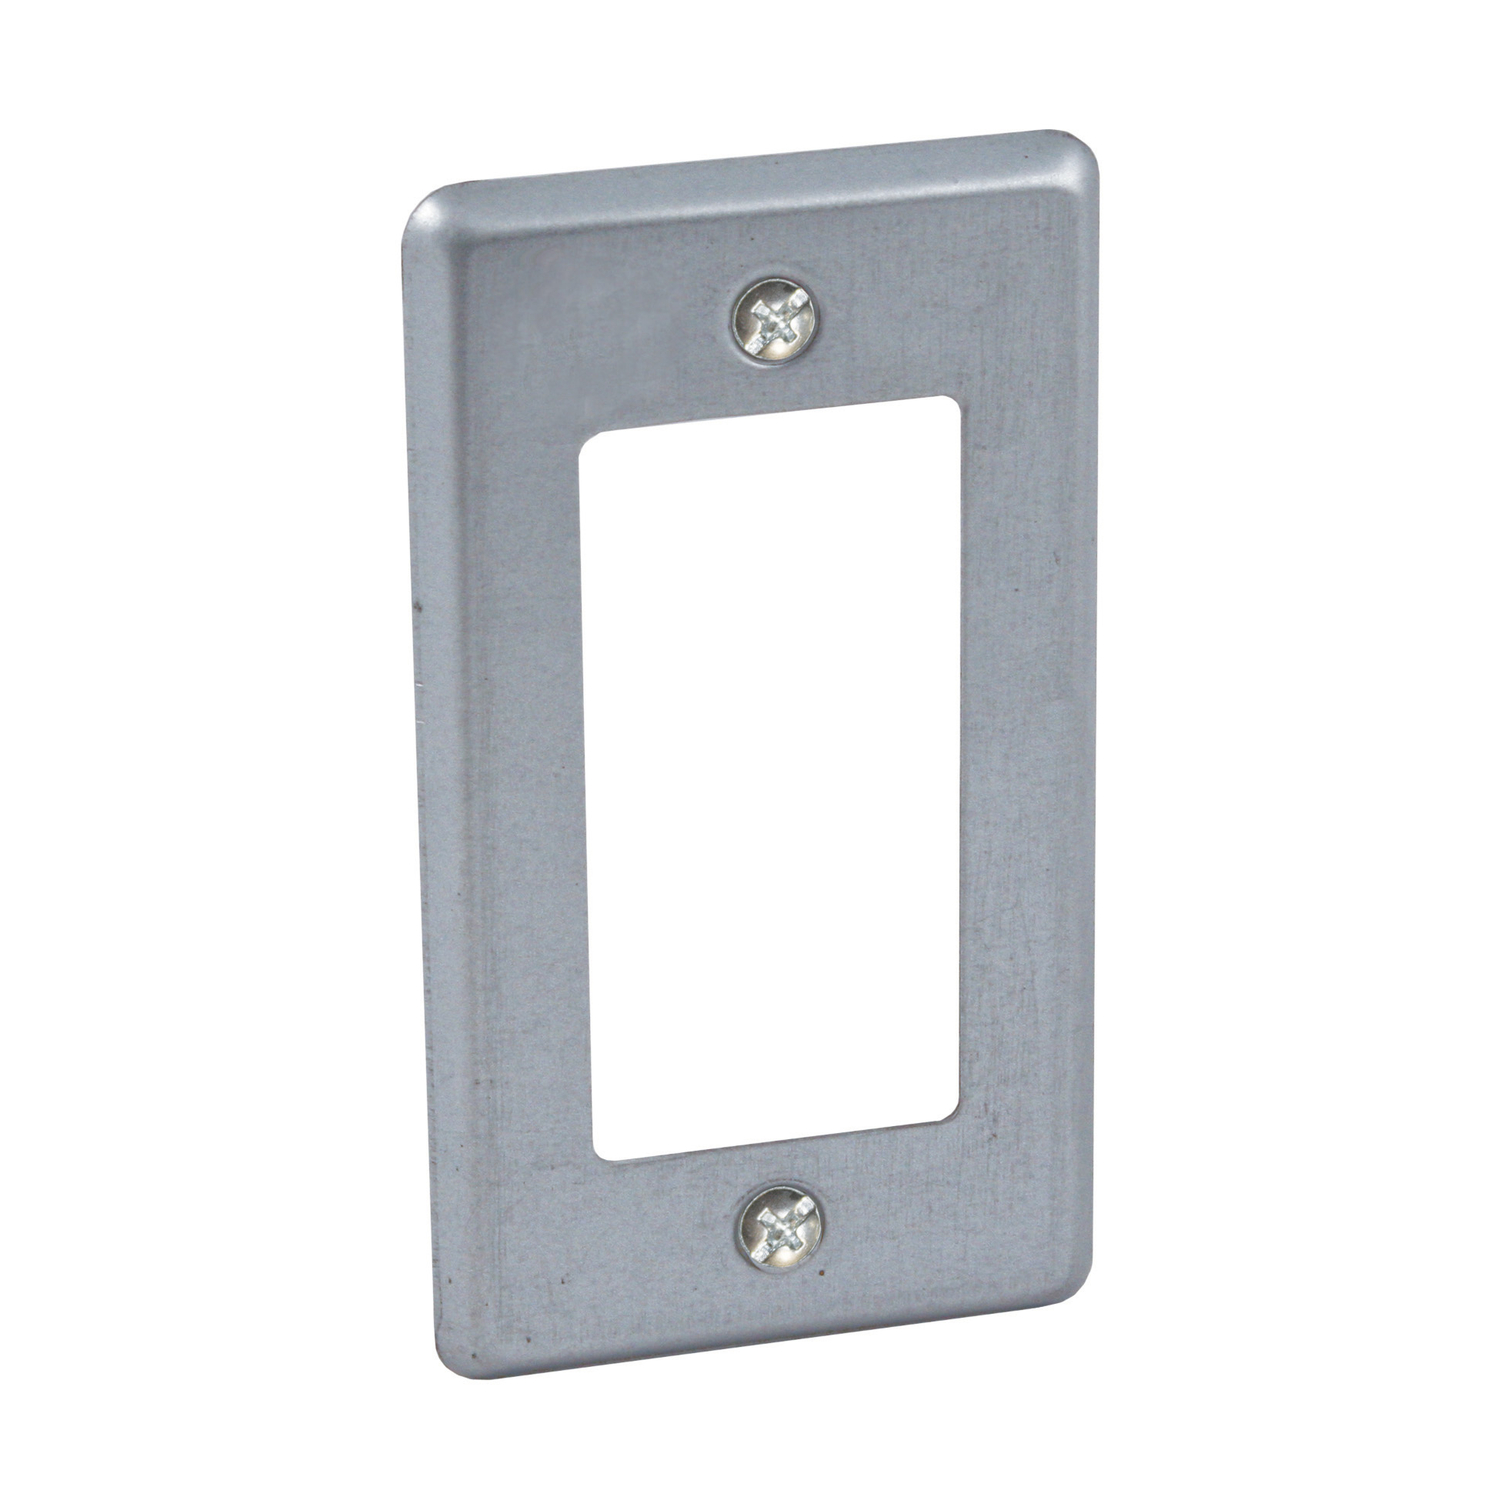 Raco  Rectangle  Steel  1 gang Box Cover  For 1 GFCI Receptacle